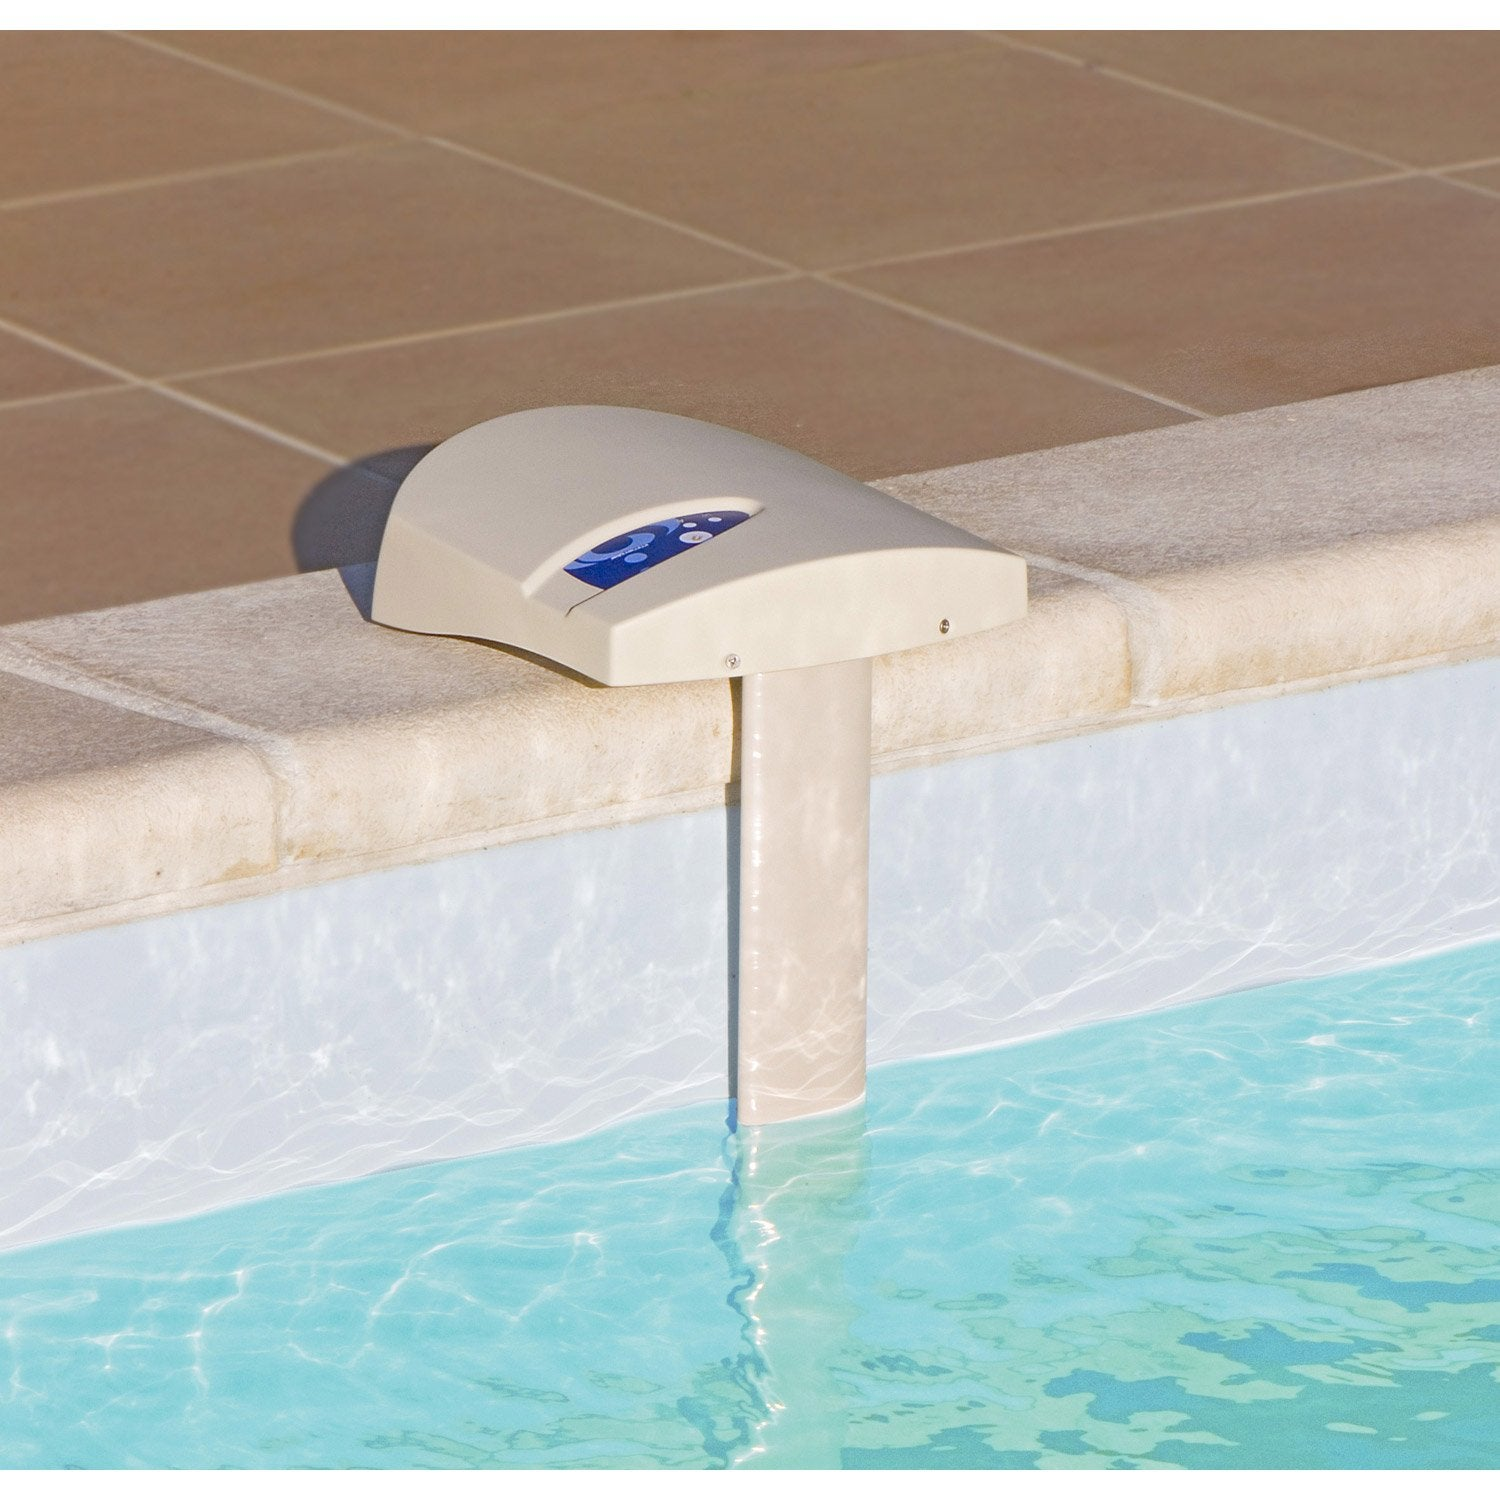 Kit alarme pour piscine enterr e a immersion visiopool 20m2 leroy merlin - Bache piscine rectangulaire leroy merlin ...